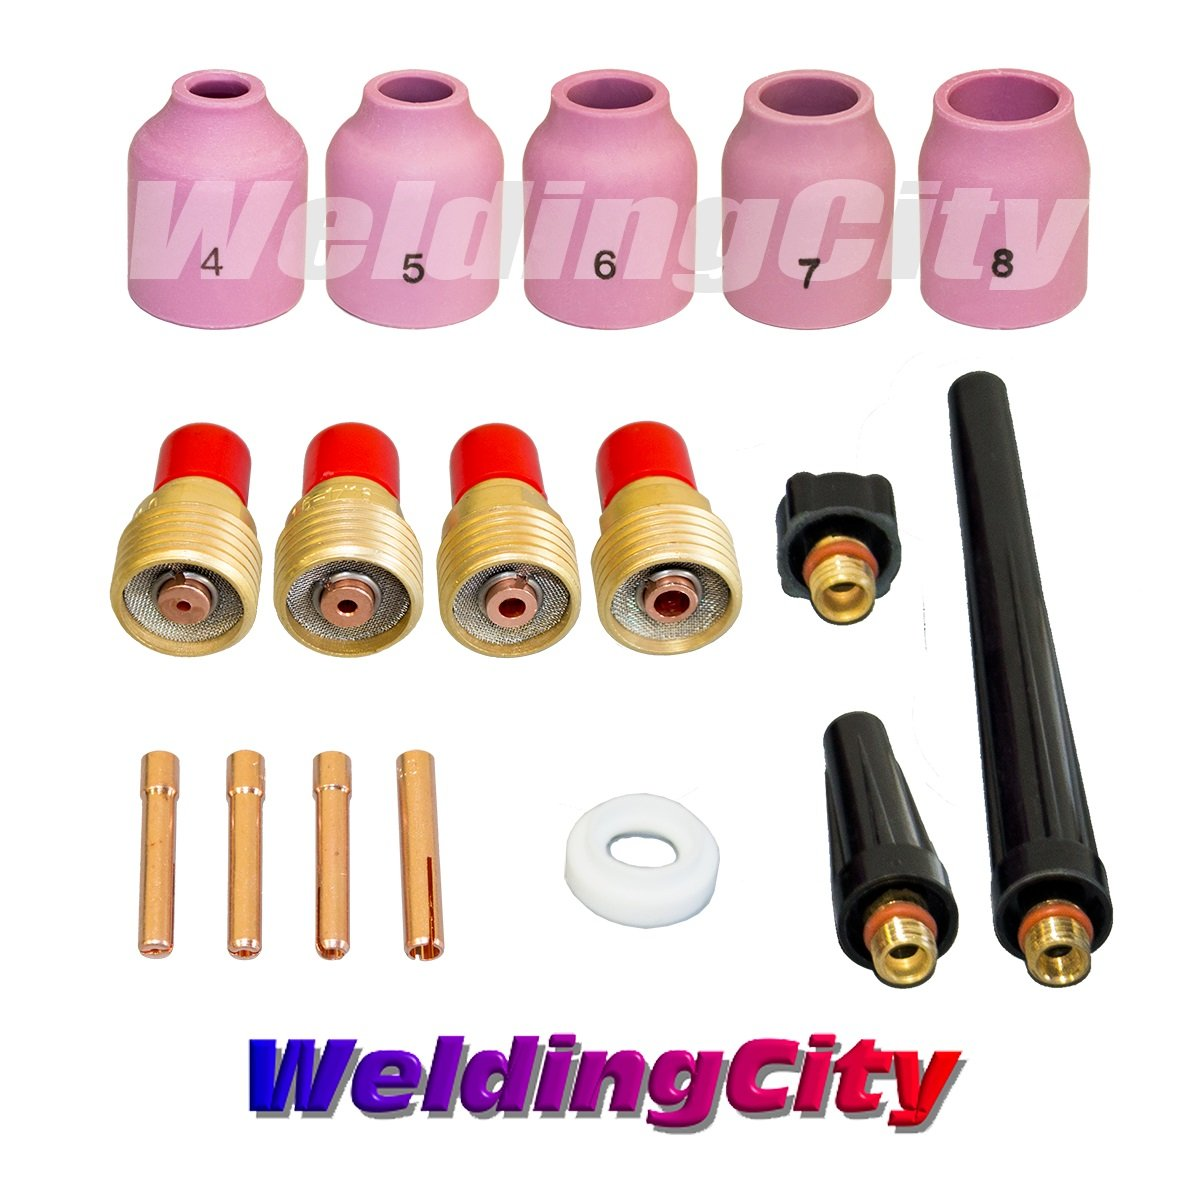 Weldingcity Tig Welding Accessory Kit Cup Gas Lens Collet Gasket Torch Diagram Back Cap 0040 1 16 3 32 8 For 9 20 25 T32 Equipment